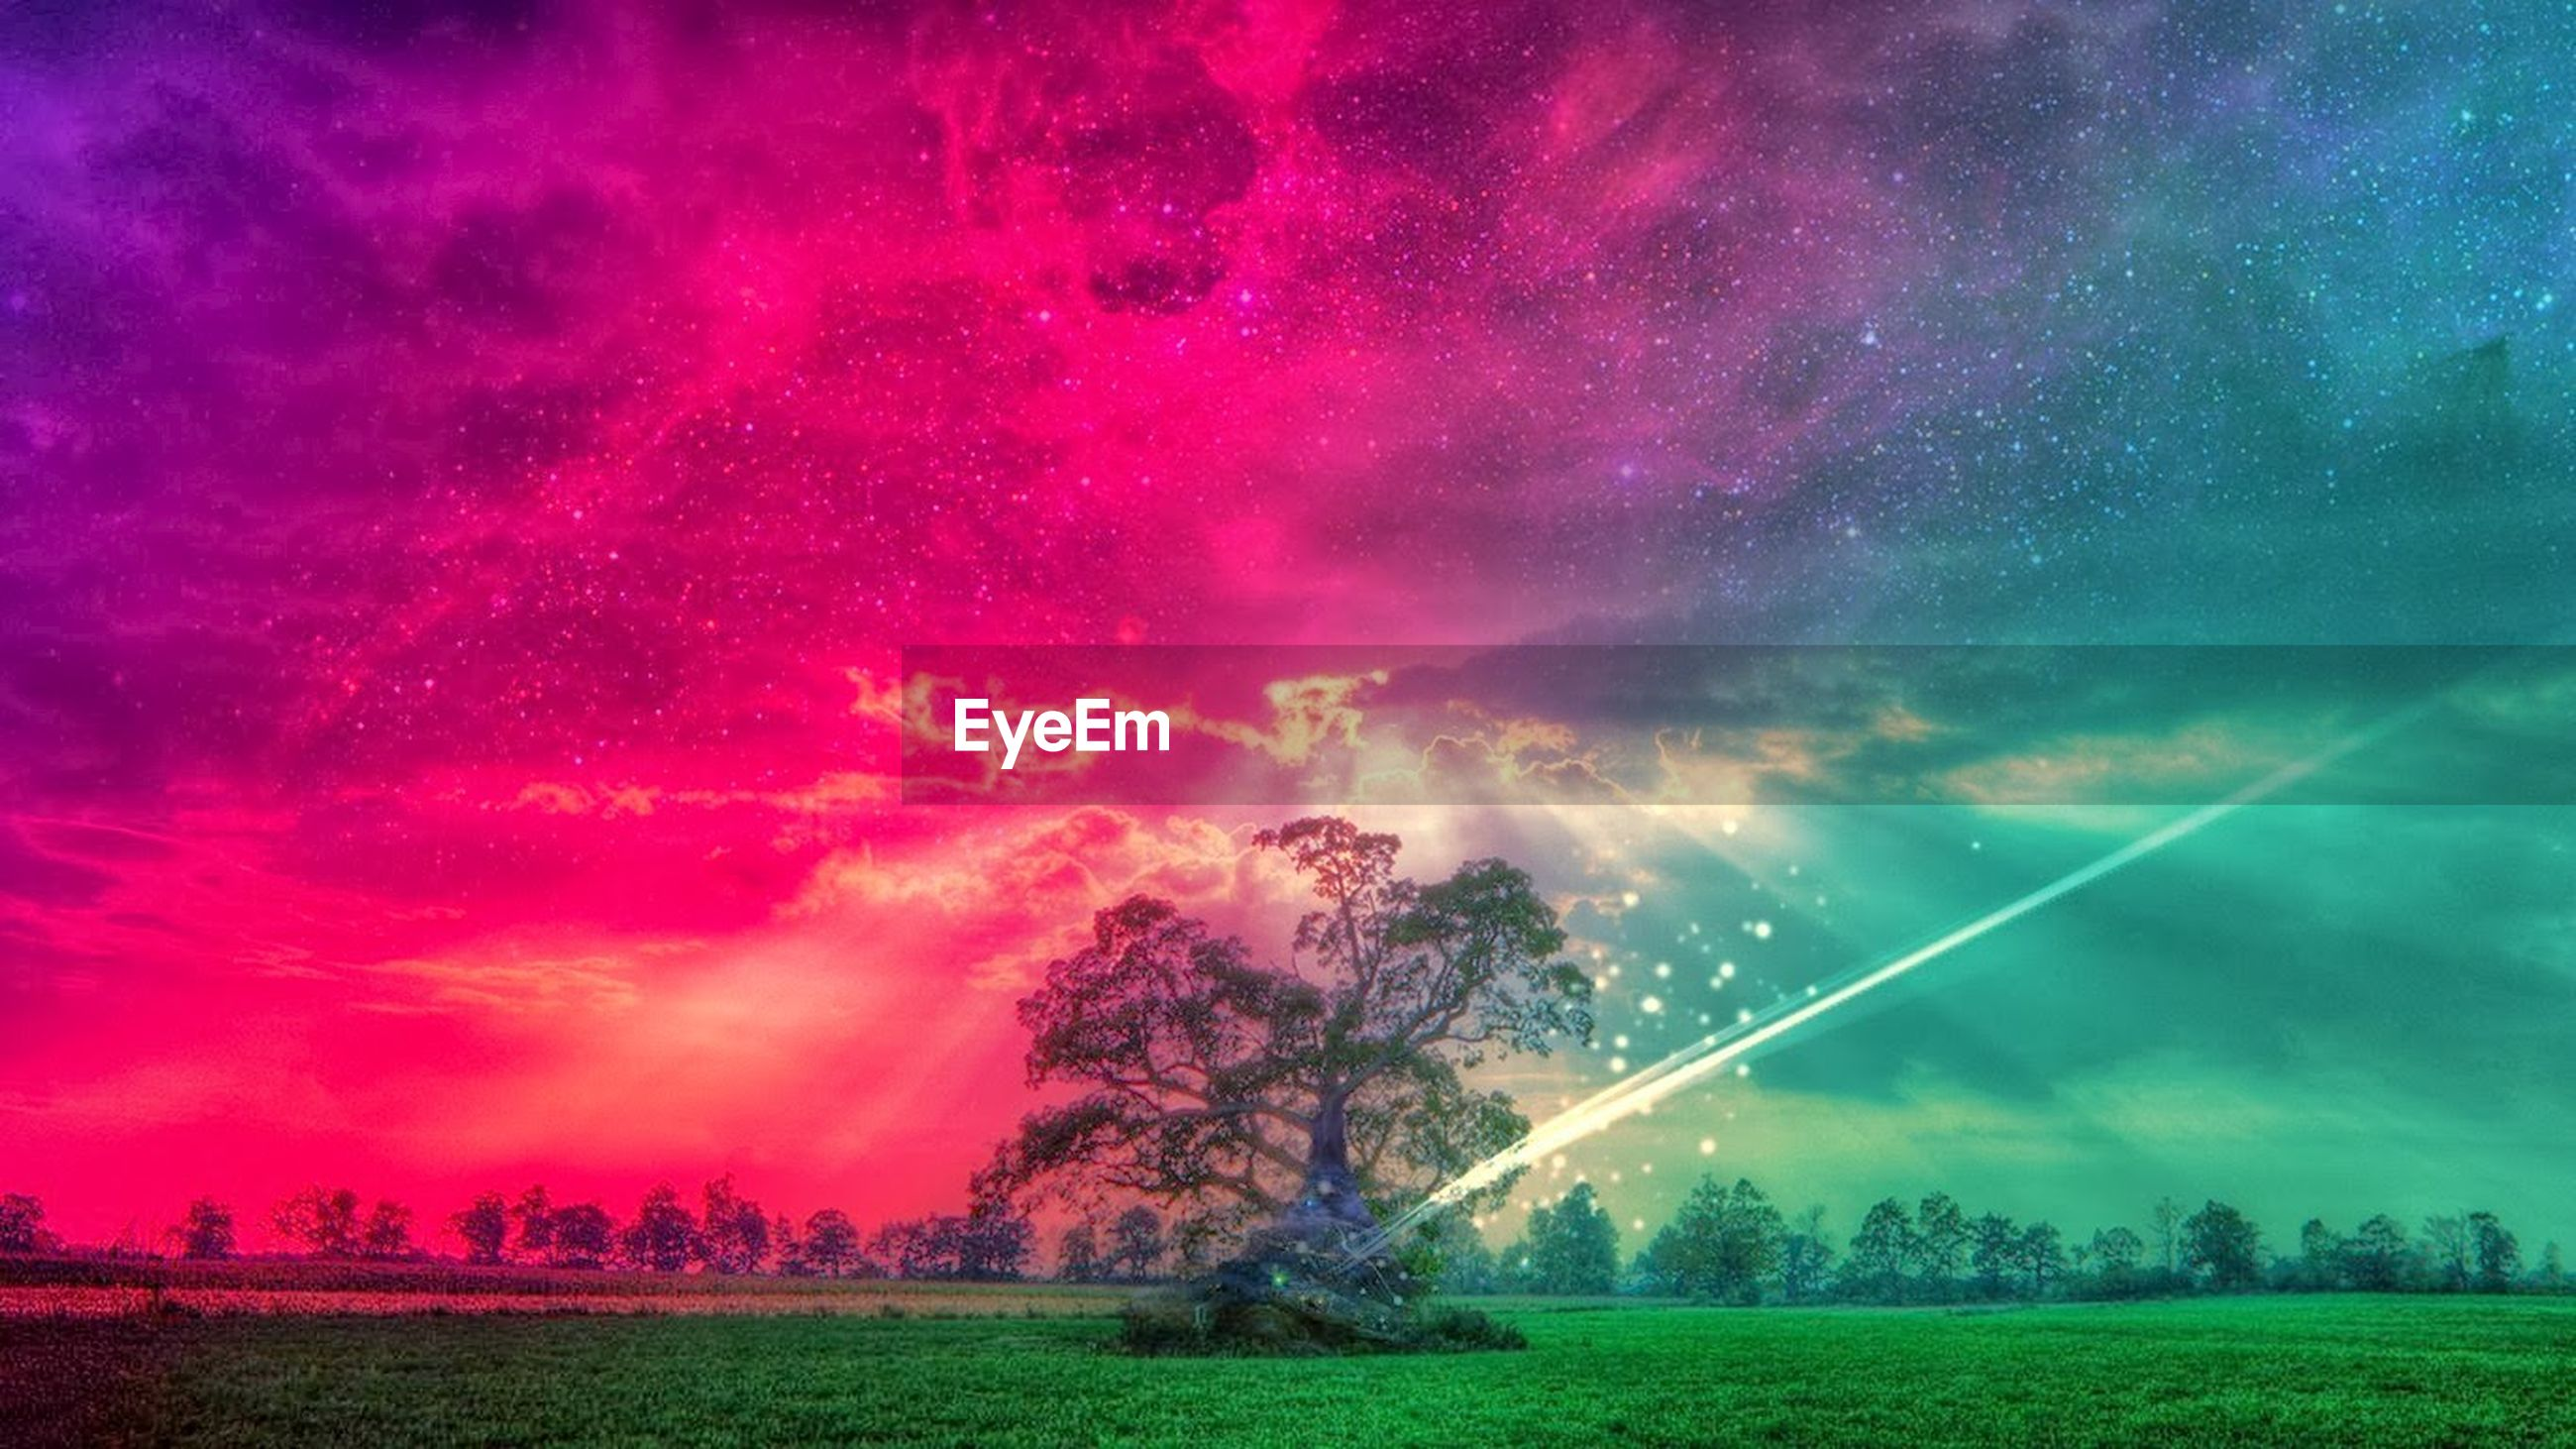 sky, cloud - sky, beauty in nature, scenics, field, tree, dramatic sky, nature, cloudy, tranquil scene, tranquility, landscape, idyllic, storm cloud, night, grass, outdoors, cloud, rainbow, weather